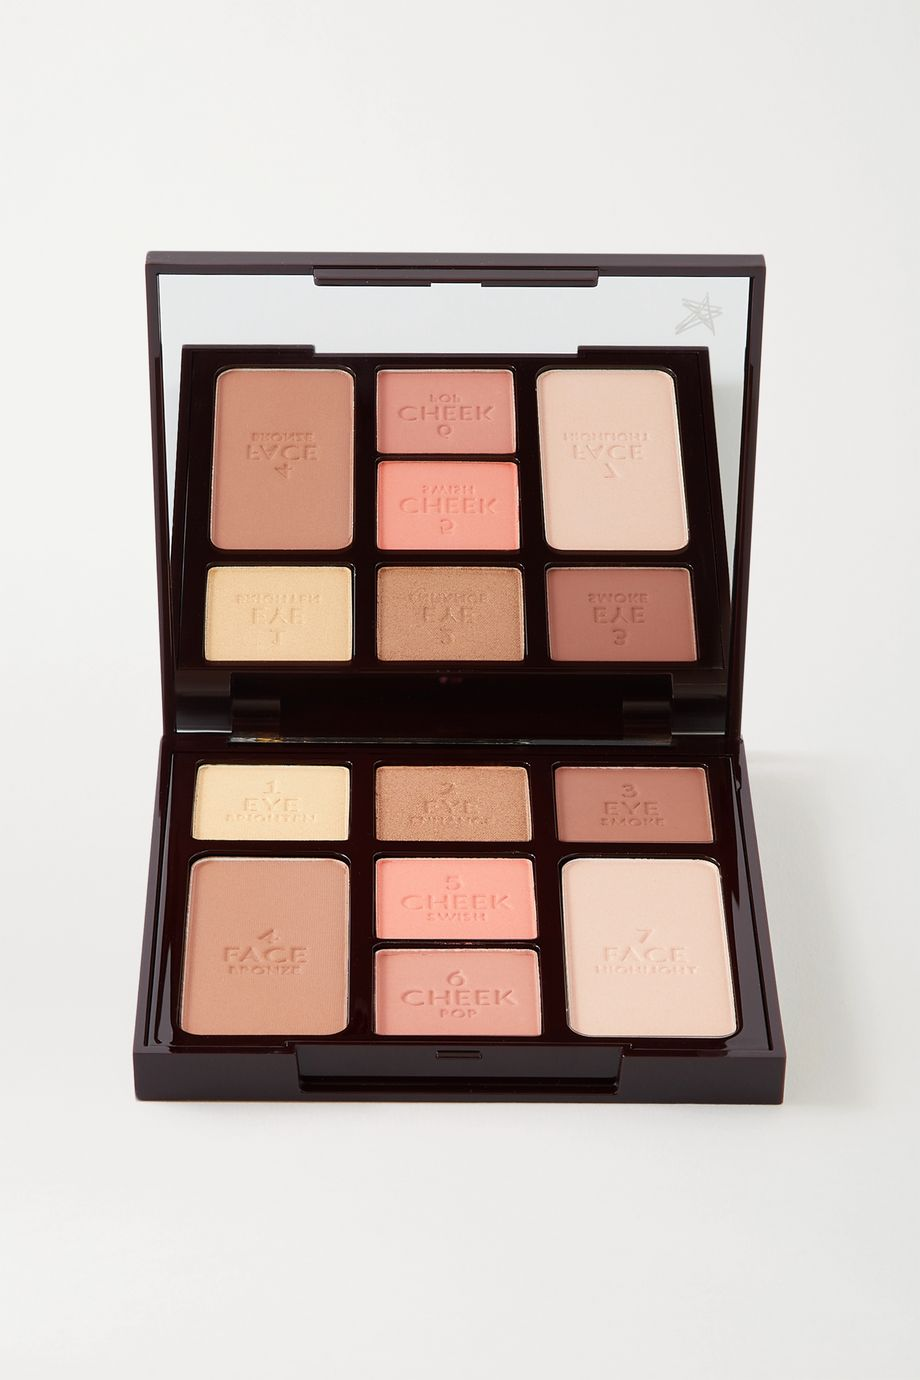 Charlotte Tilbury Instant Look in a Palette - Stoned Rose Beauty